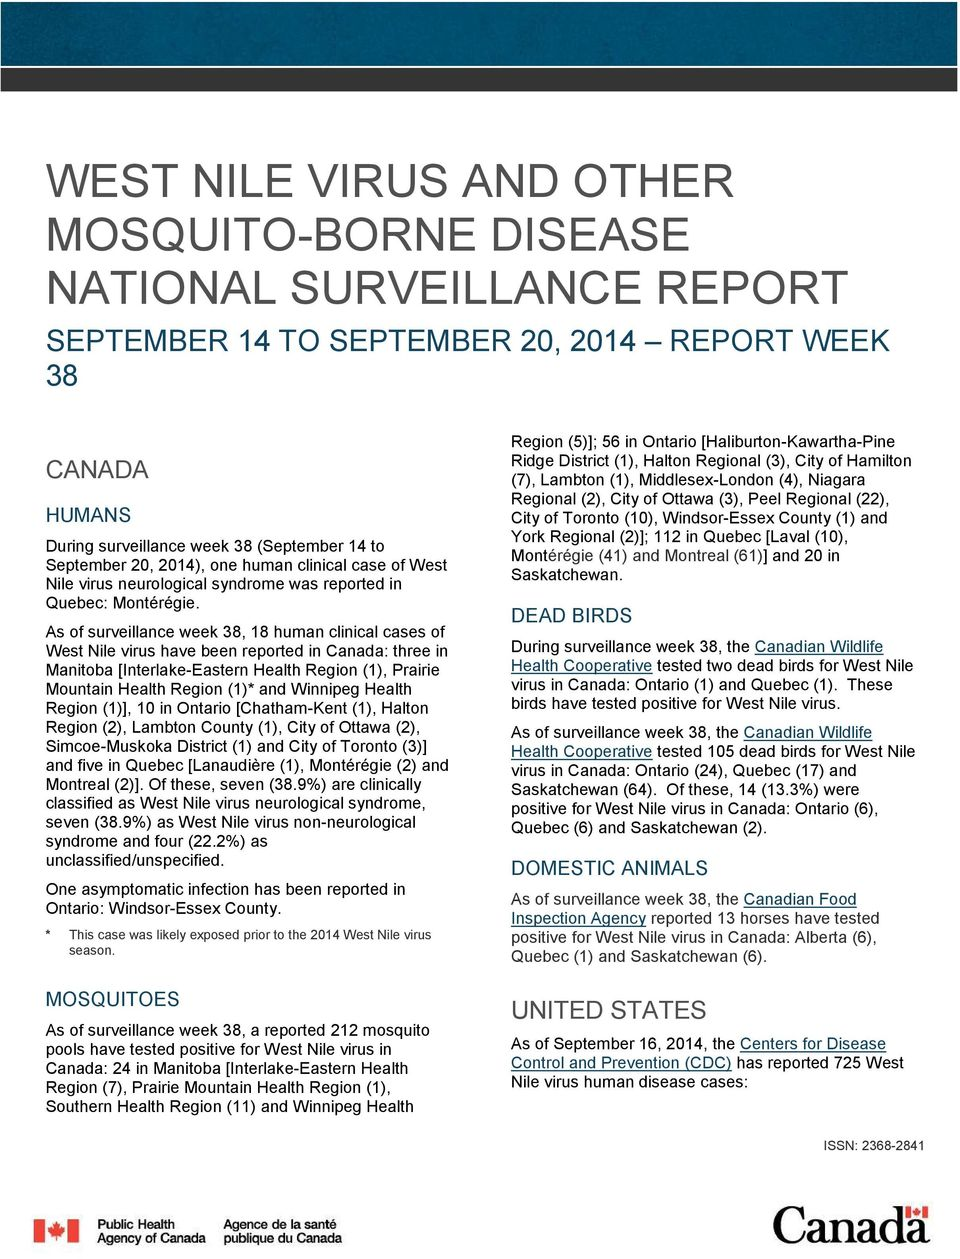 As of surveillance week 38, 18 human clinical cases of West Nile virus have been reported in Canada: three in Manitoba [Interlake-Eastern Health Region (1), Prairie Mountain Health Region (1)* and